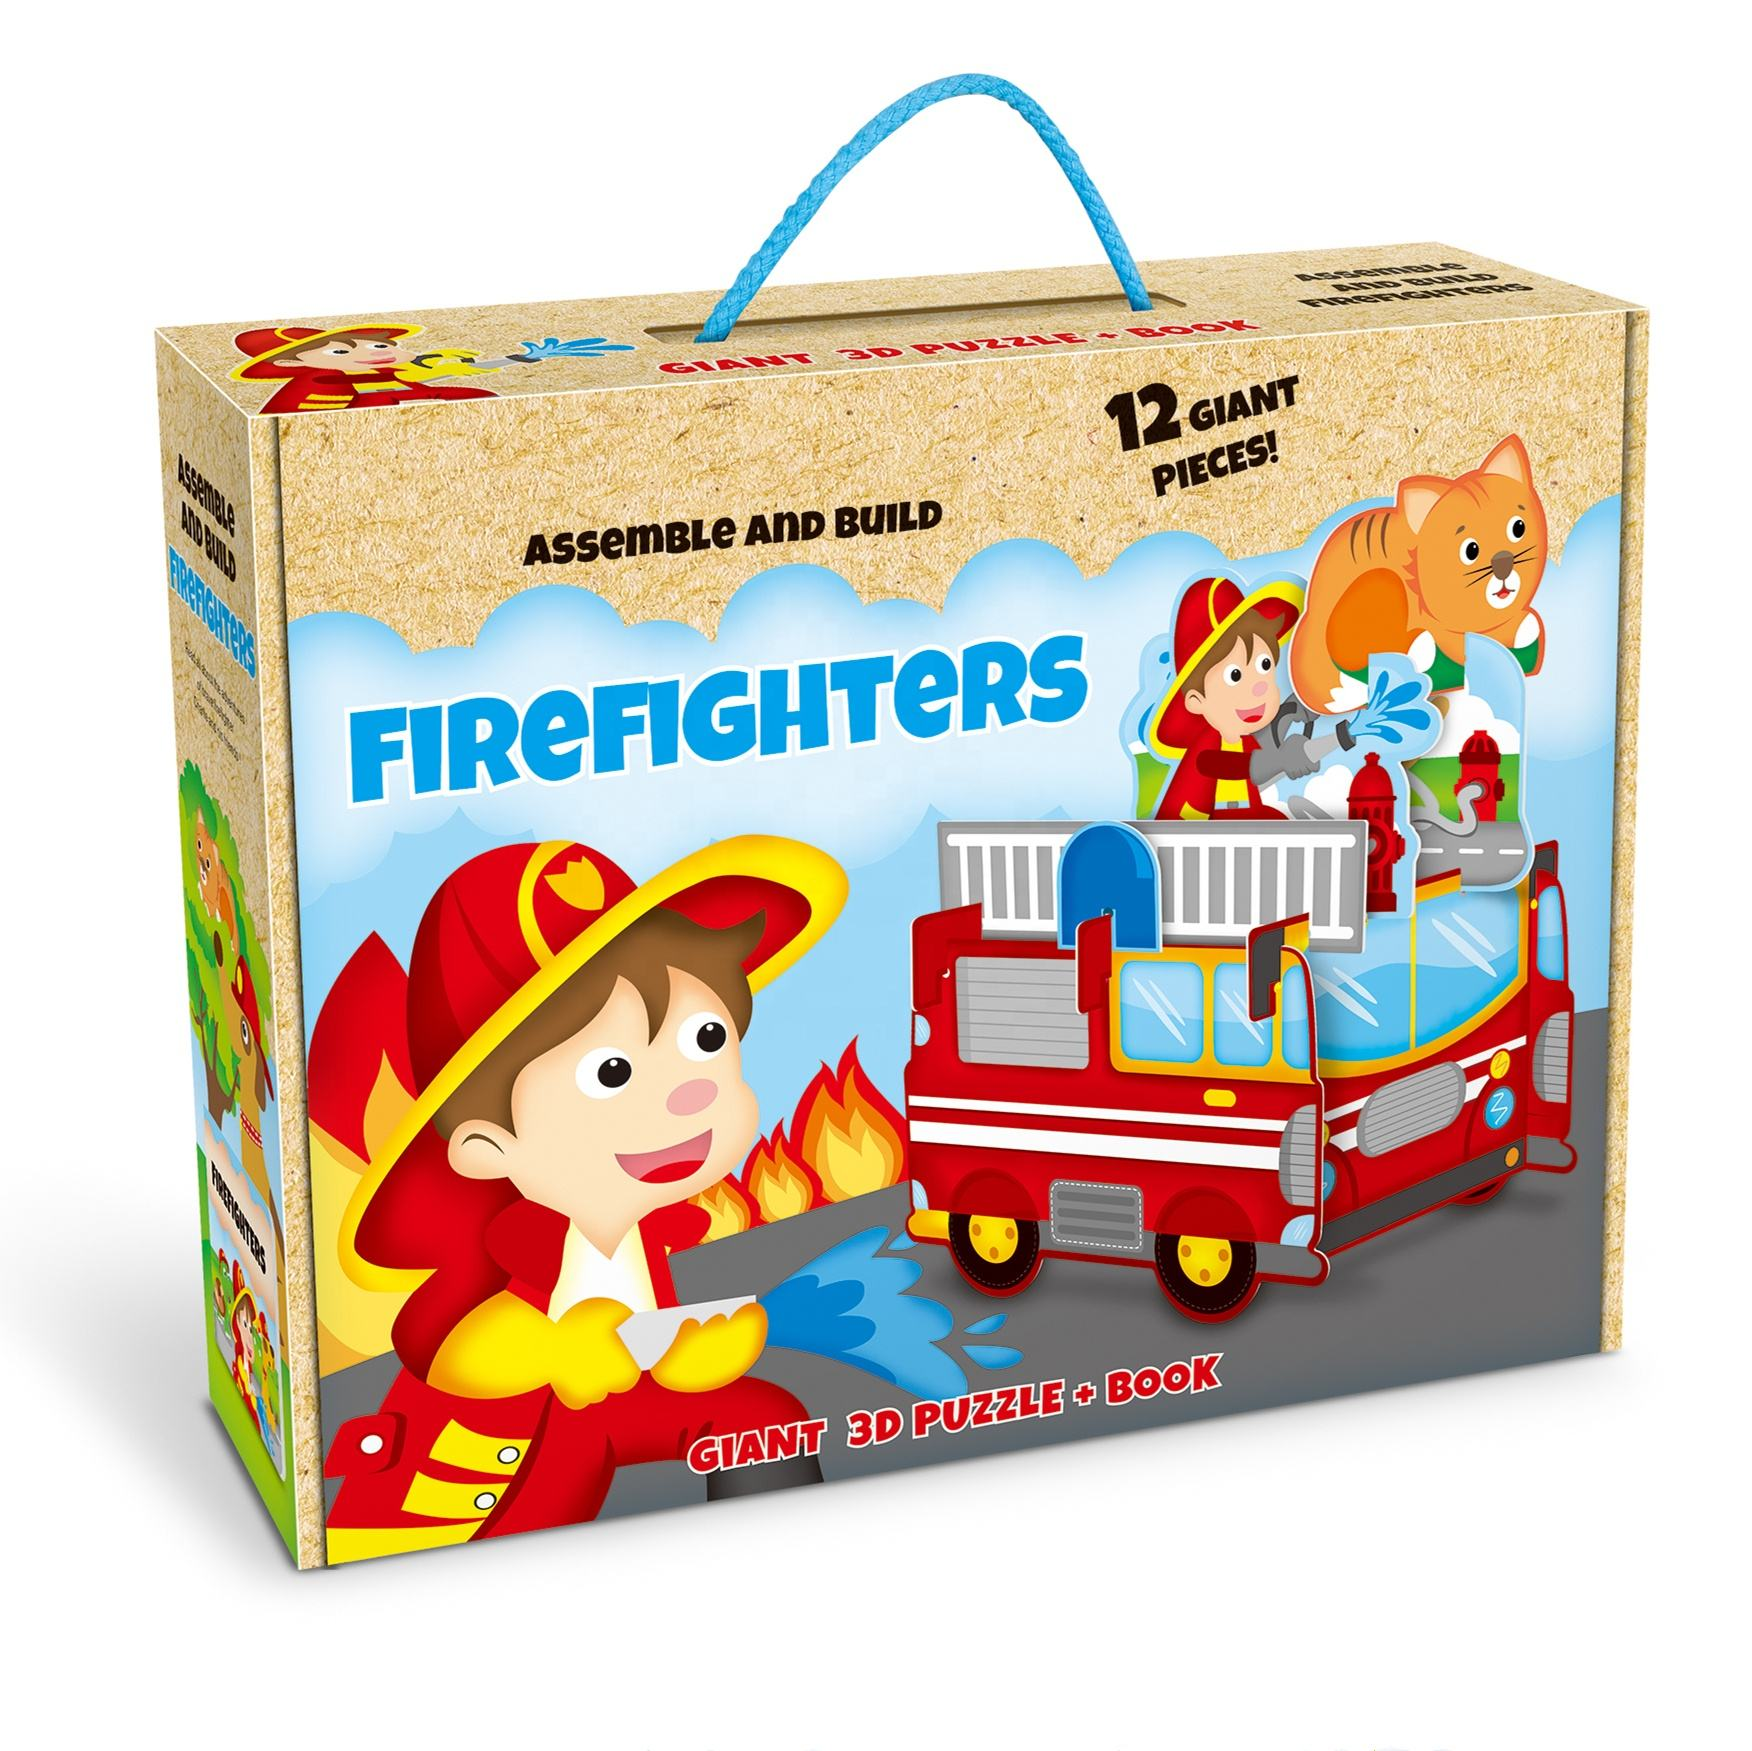 3D DIY paper puzzle educational kids assemble build toys hot sale firefighters kitchen animal with book gift for children